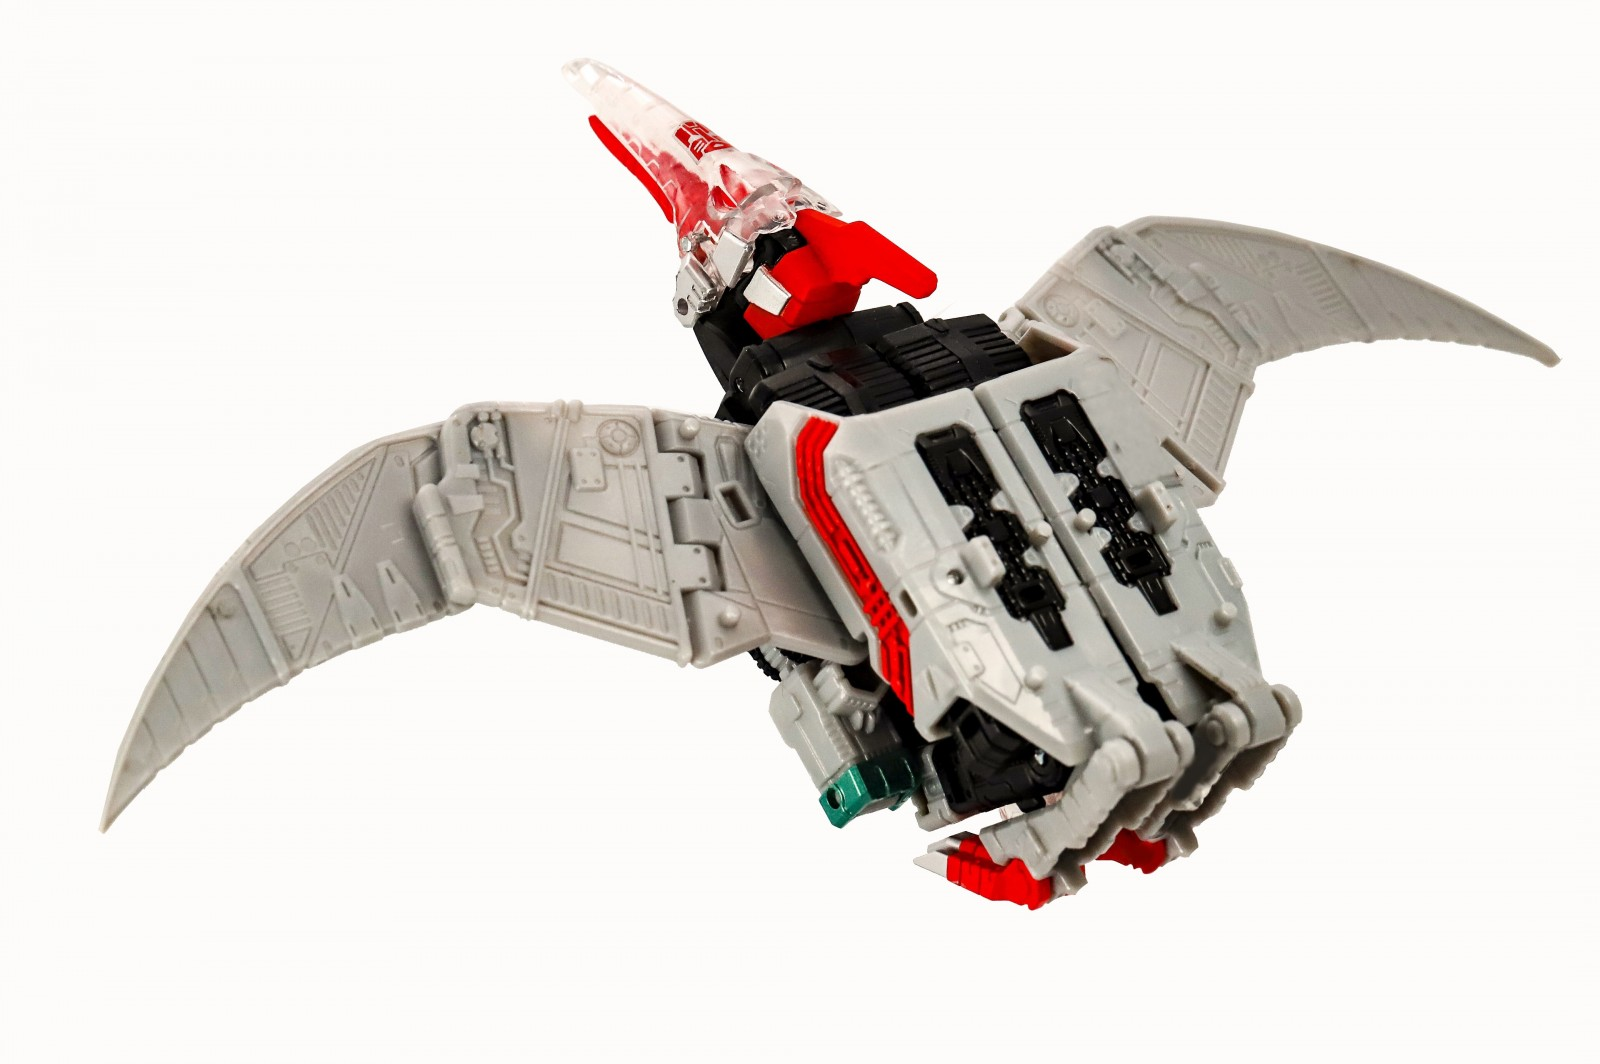 Transformers Generations Selects Deluxe Ricochet /& Dinobot Red Swoop In Stock